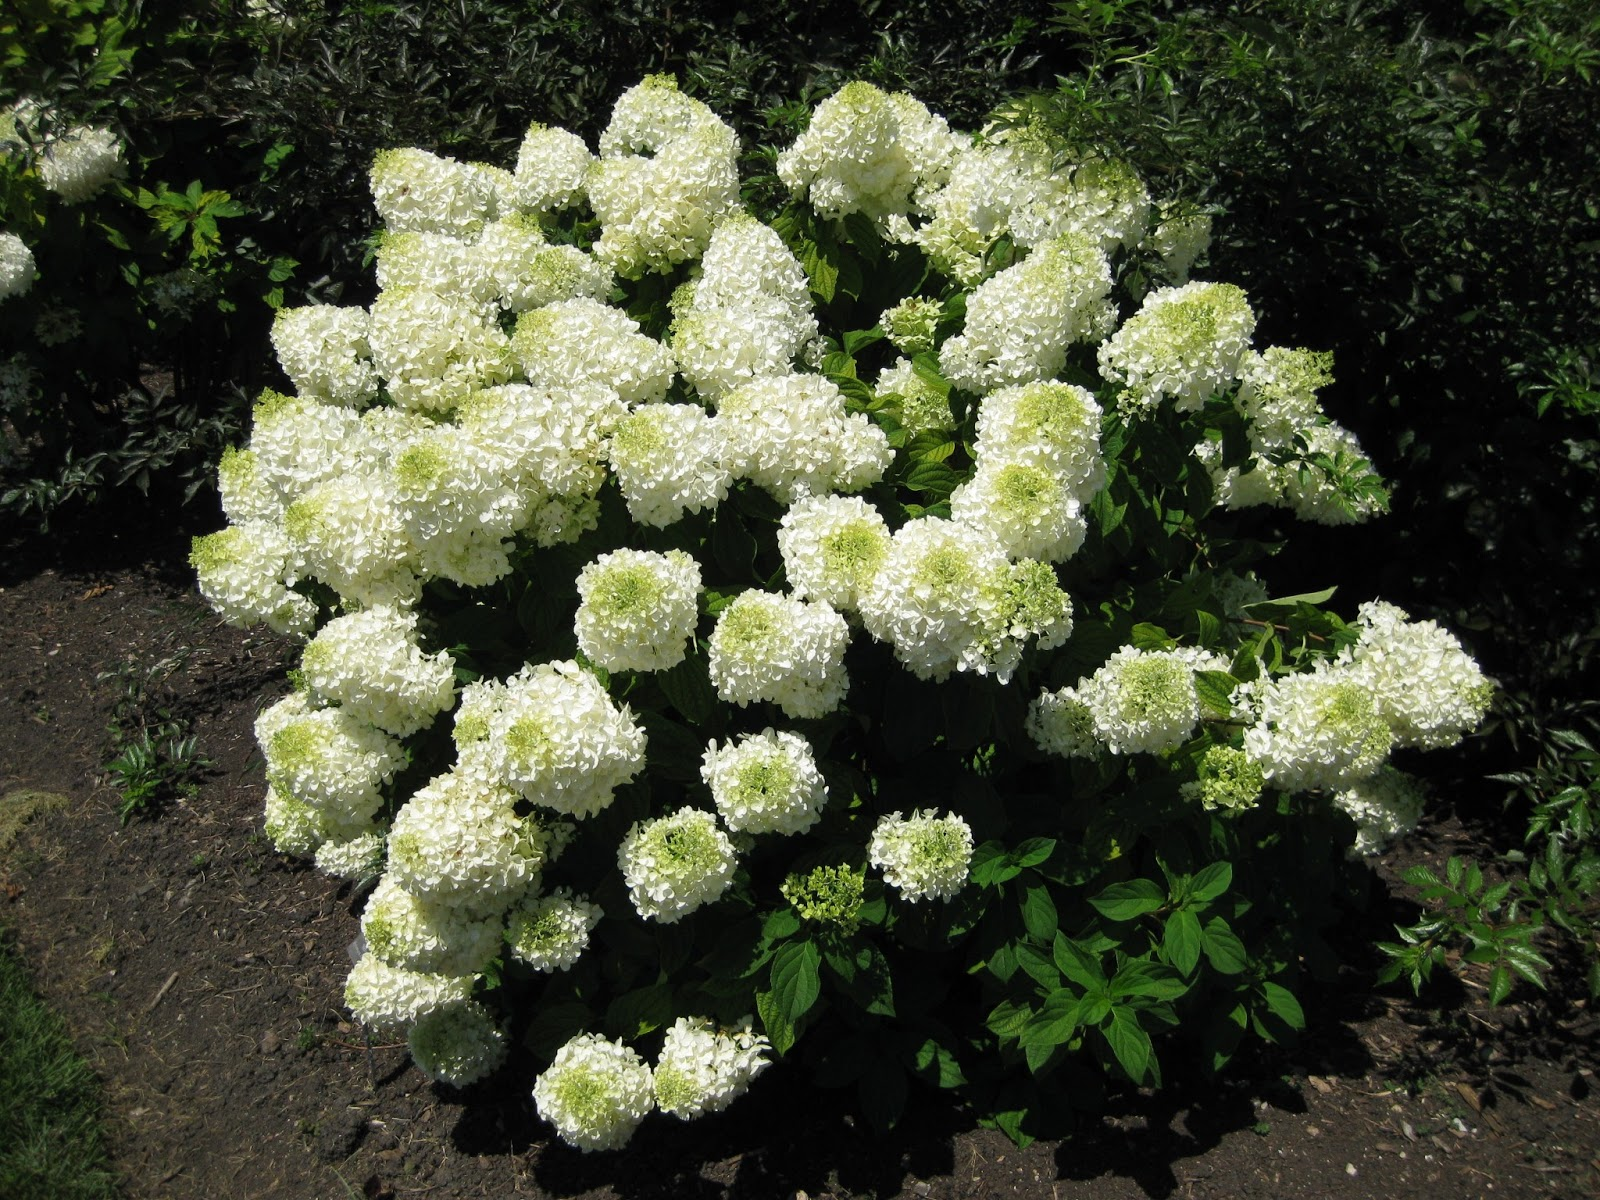 Rotary Botanical Gardens - Hort Blog: Panicled Hydrangeas For A Landscape Punch